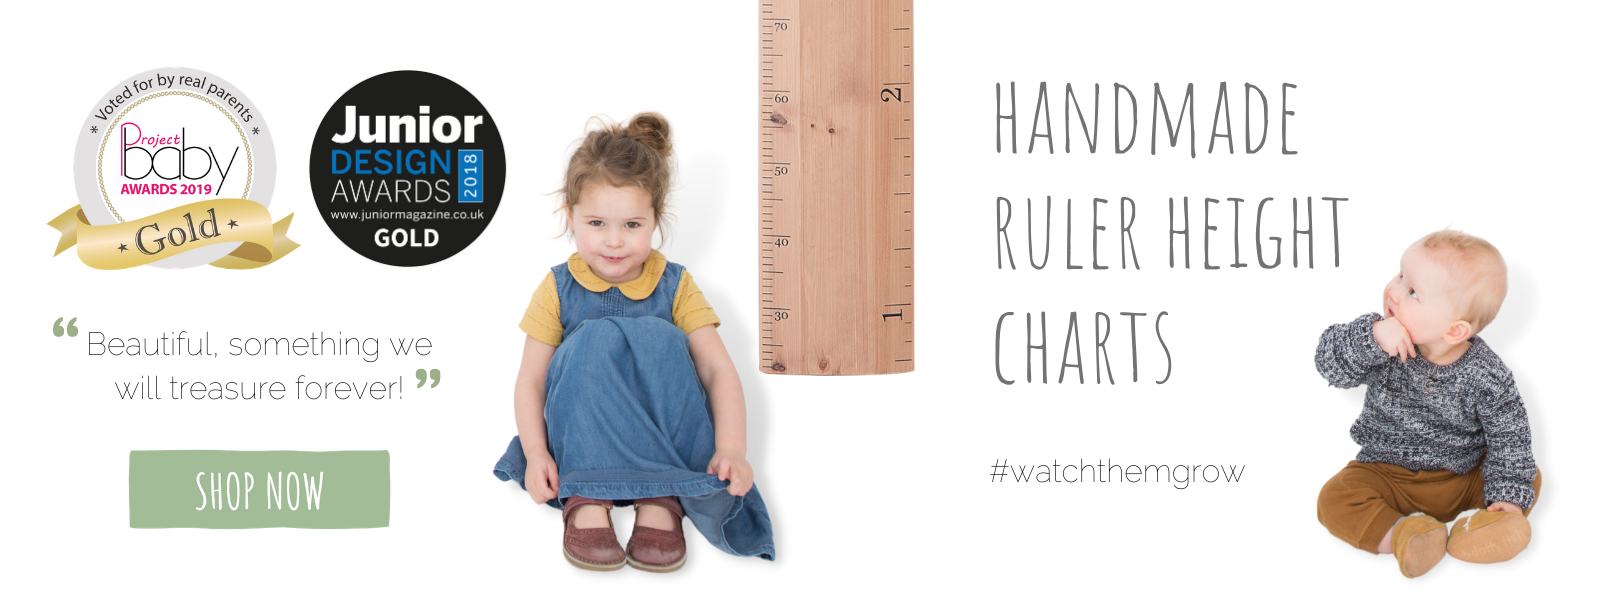 Handmade wooden Ruler Height Charts as seen in Stacey Solomon and Mrs Hinch